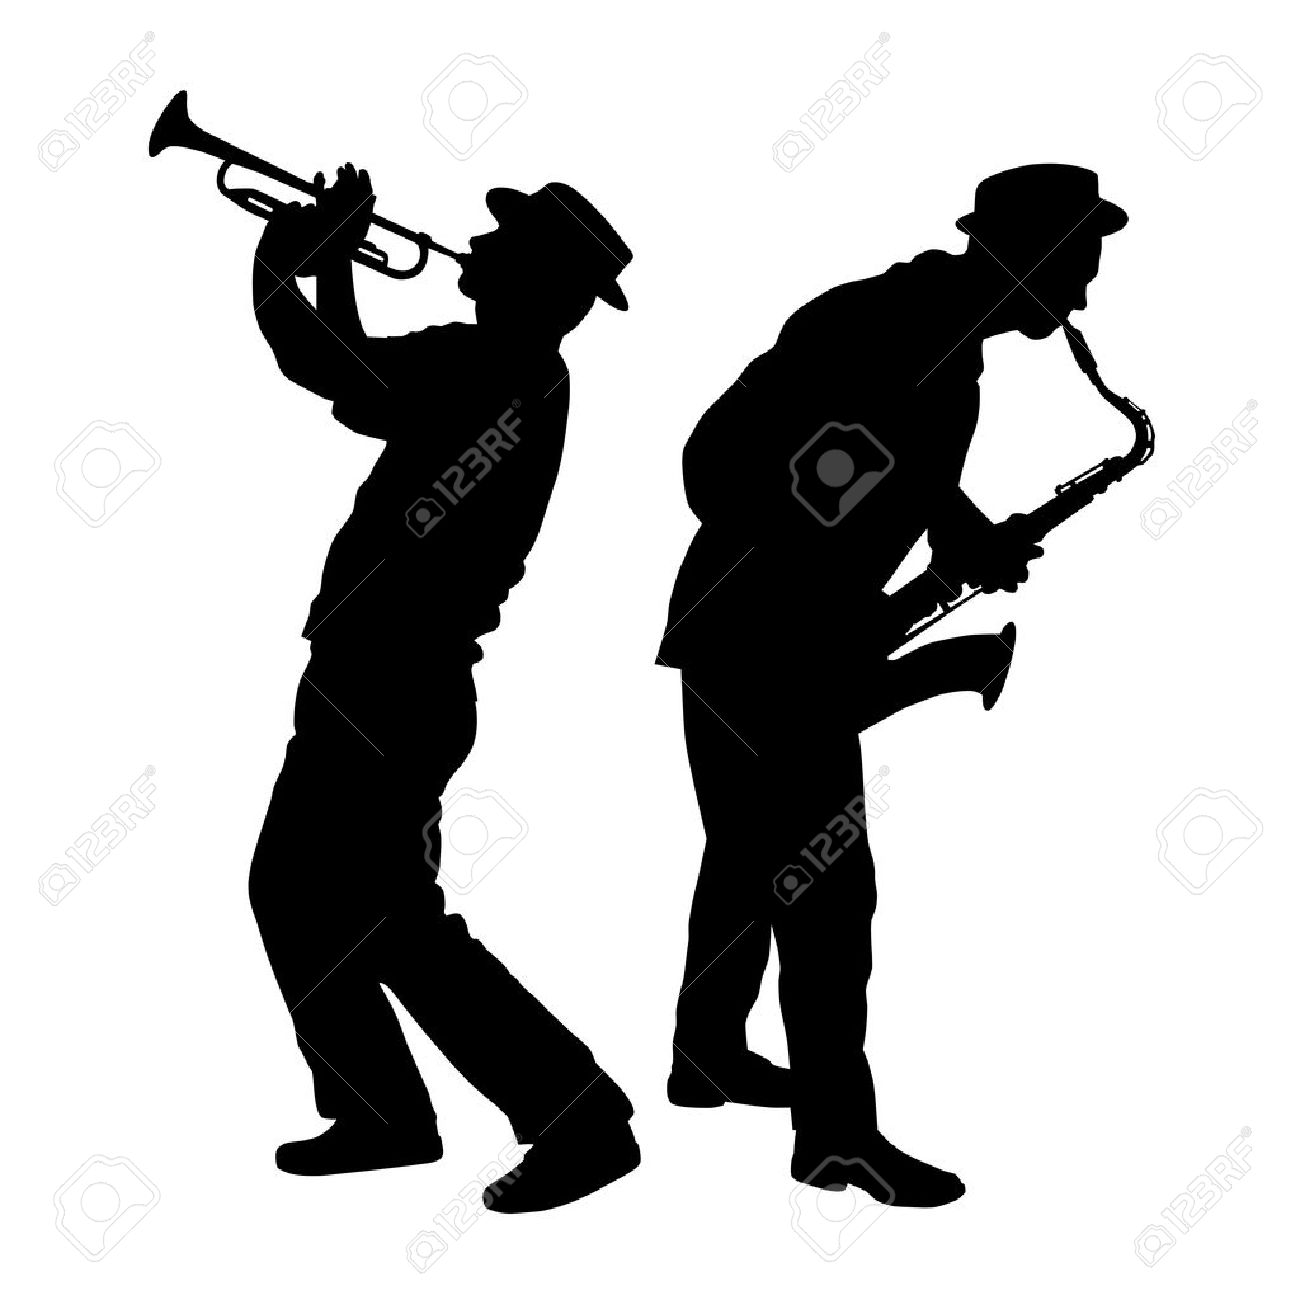 silhouette of a saxophone and trumpet player.